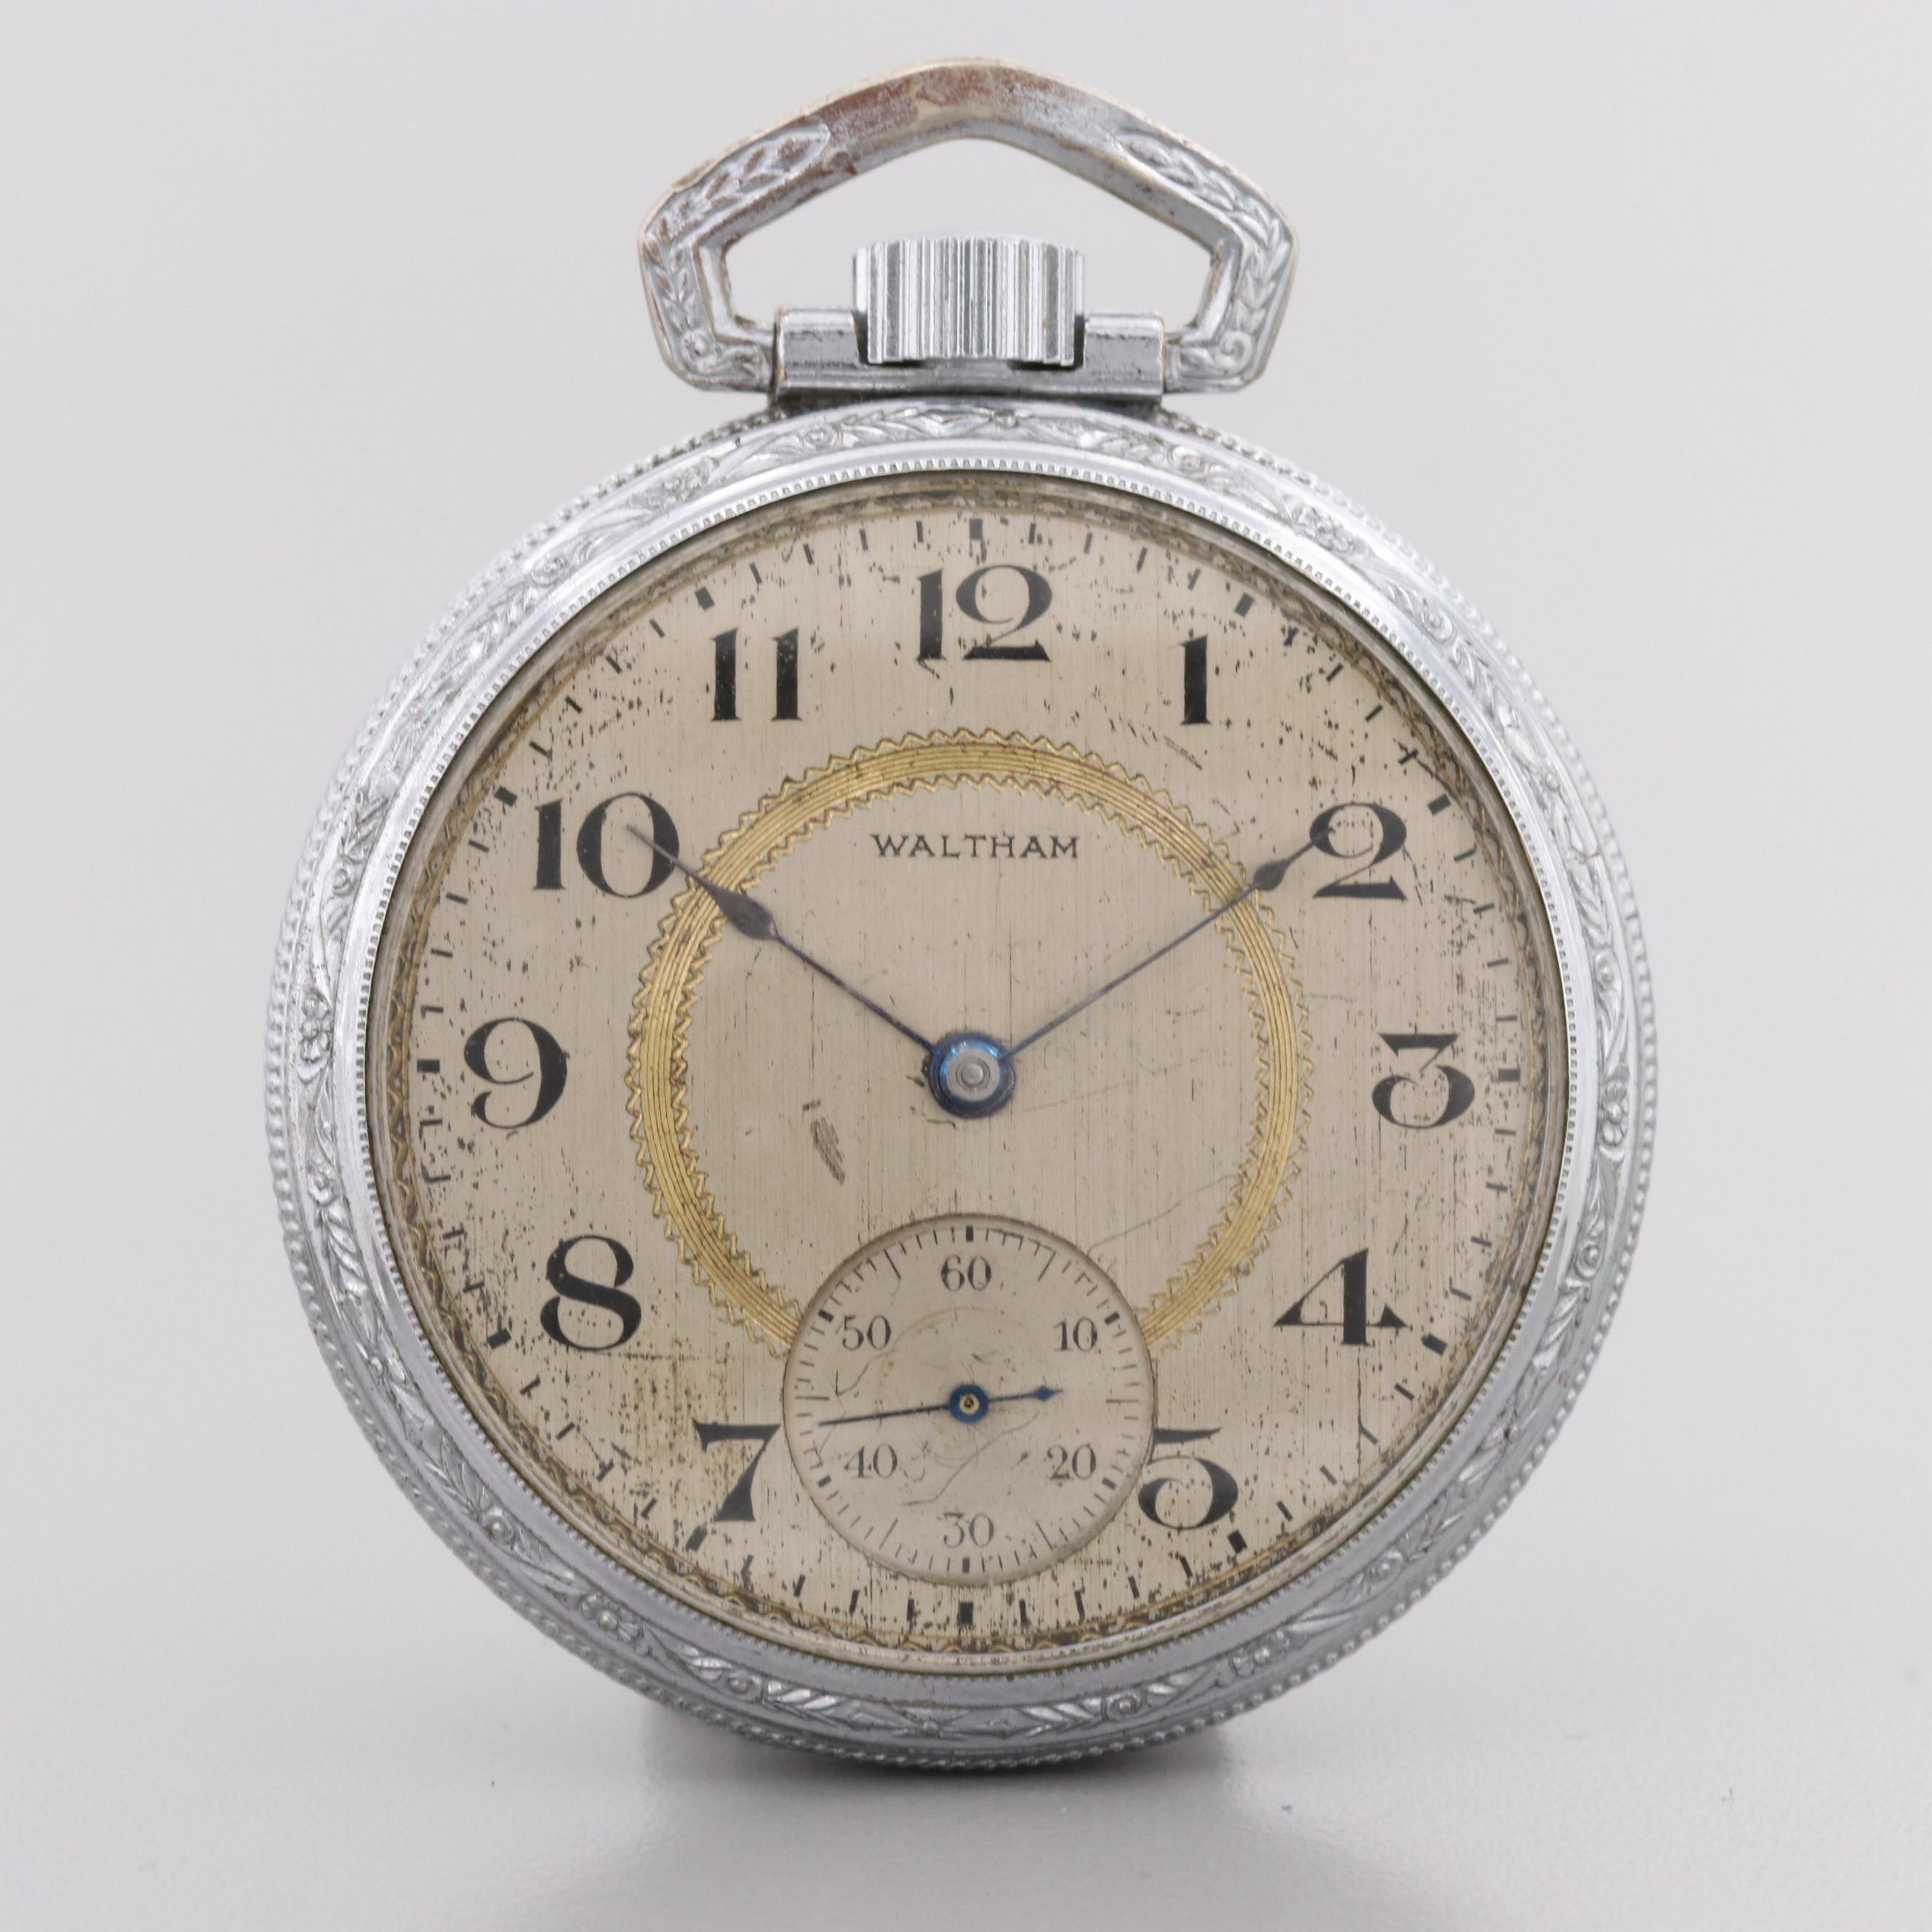 Waltham Silver Tone Pocket Watch, 1922